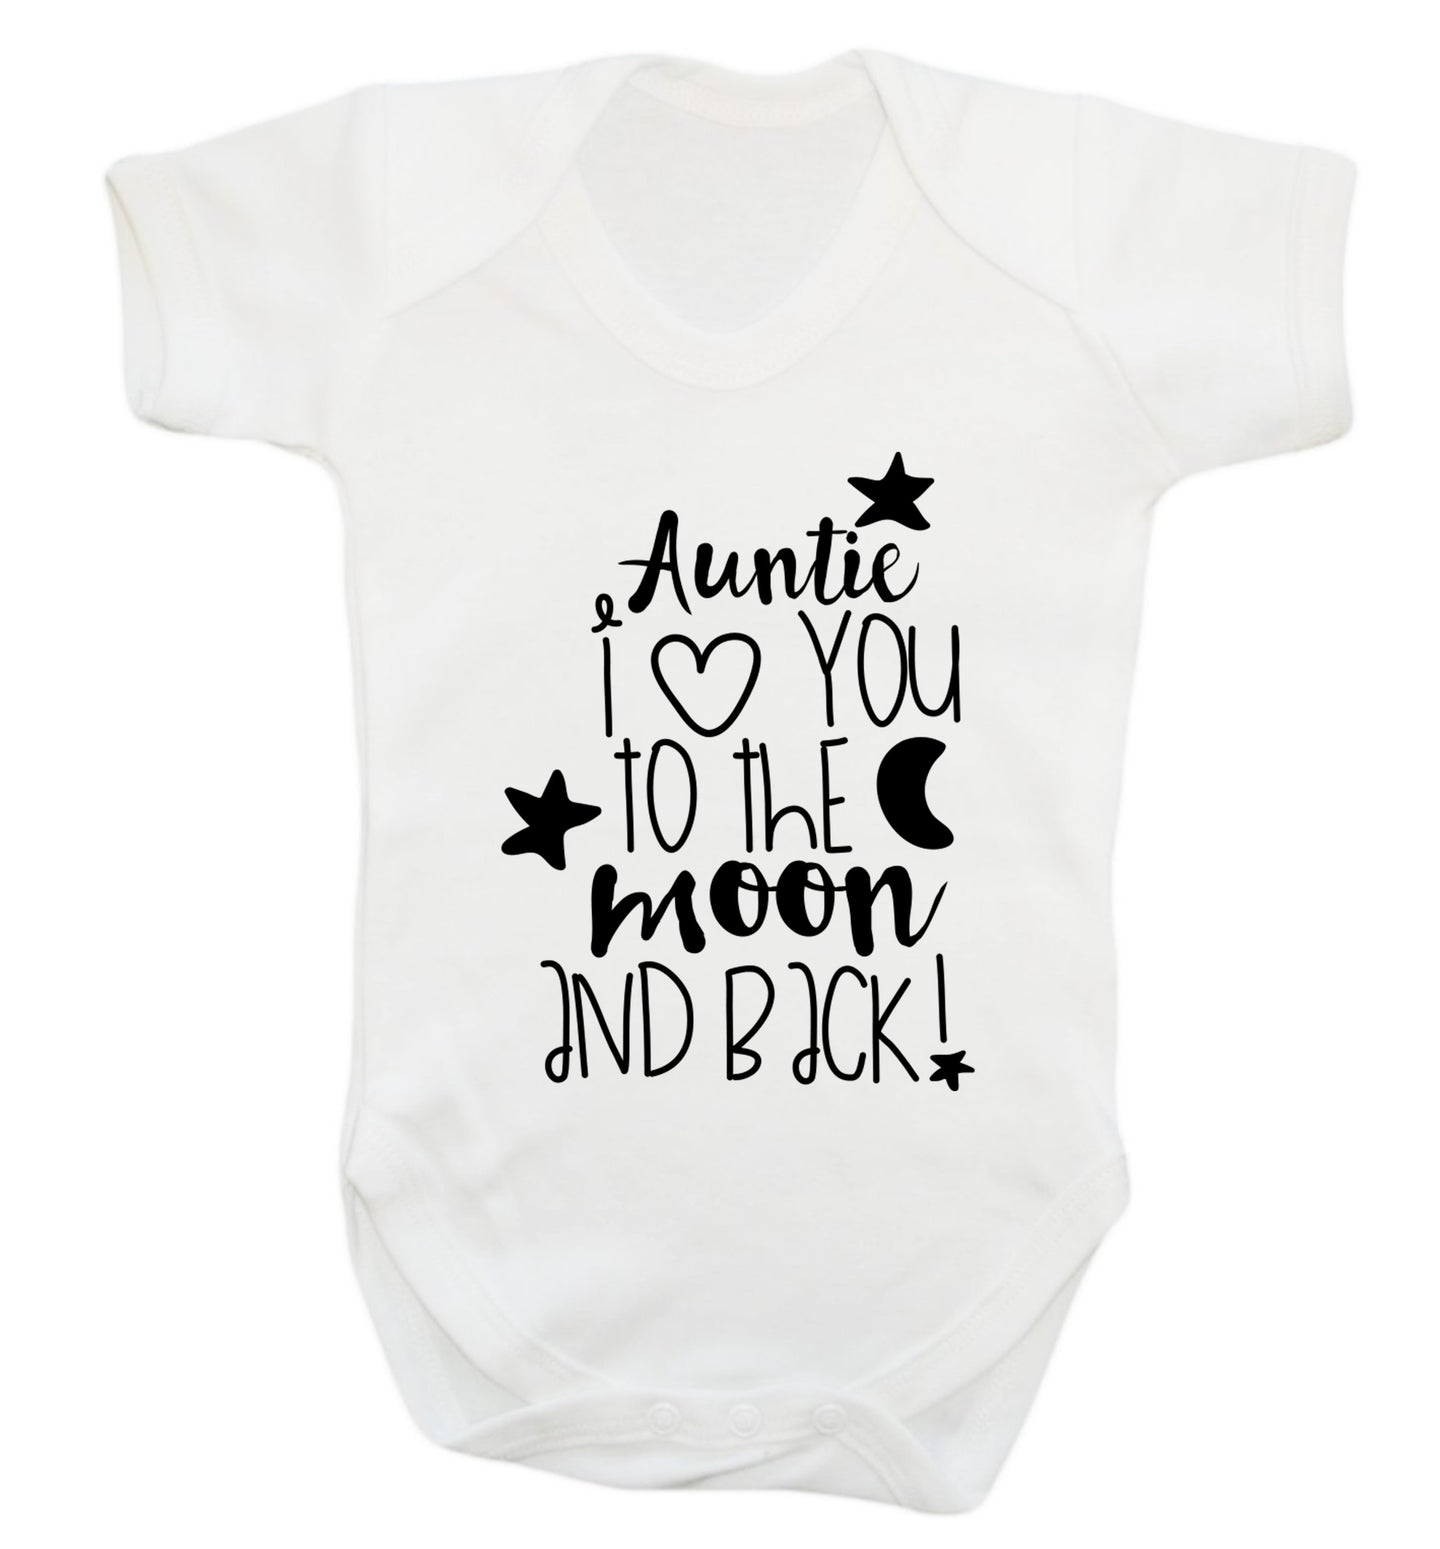 Auntie I love you to the moon and back Baby Vest white 18-24 months